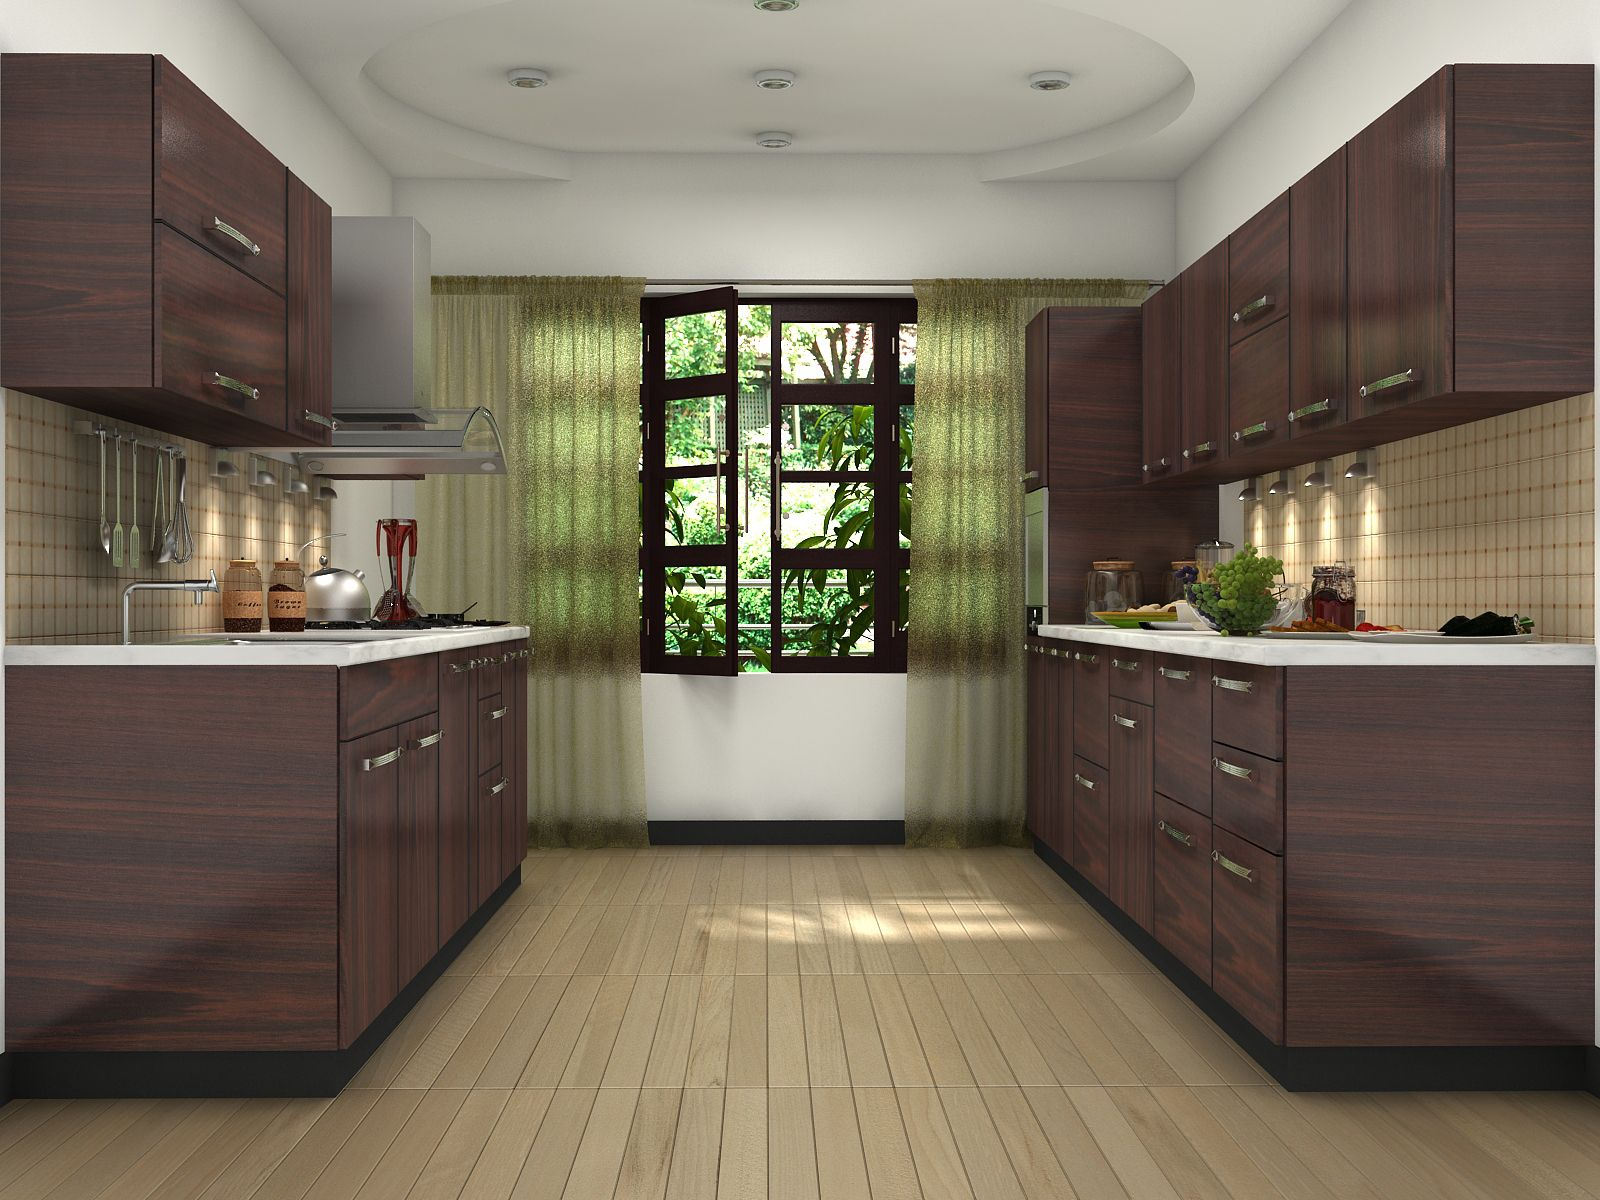 Modular Kitchen Wall Cabinets Easy Remodel Brown Design Ideas Interior In